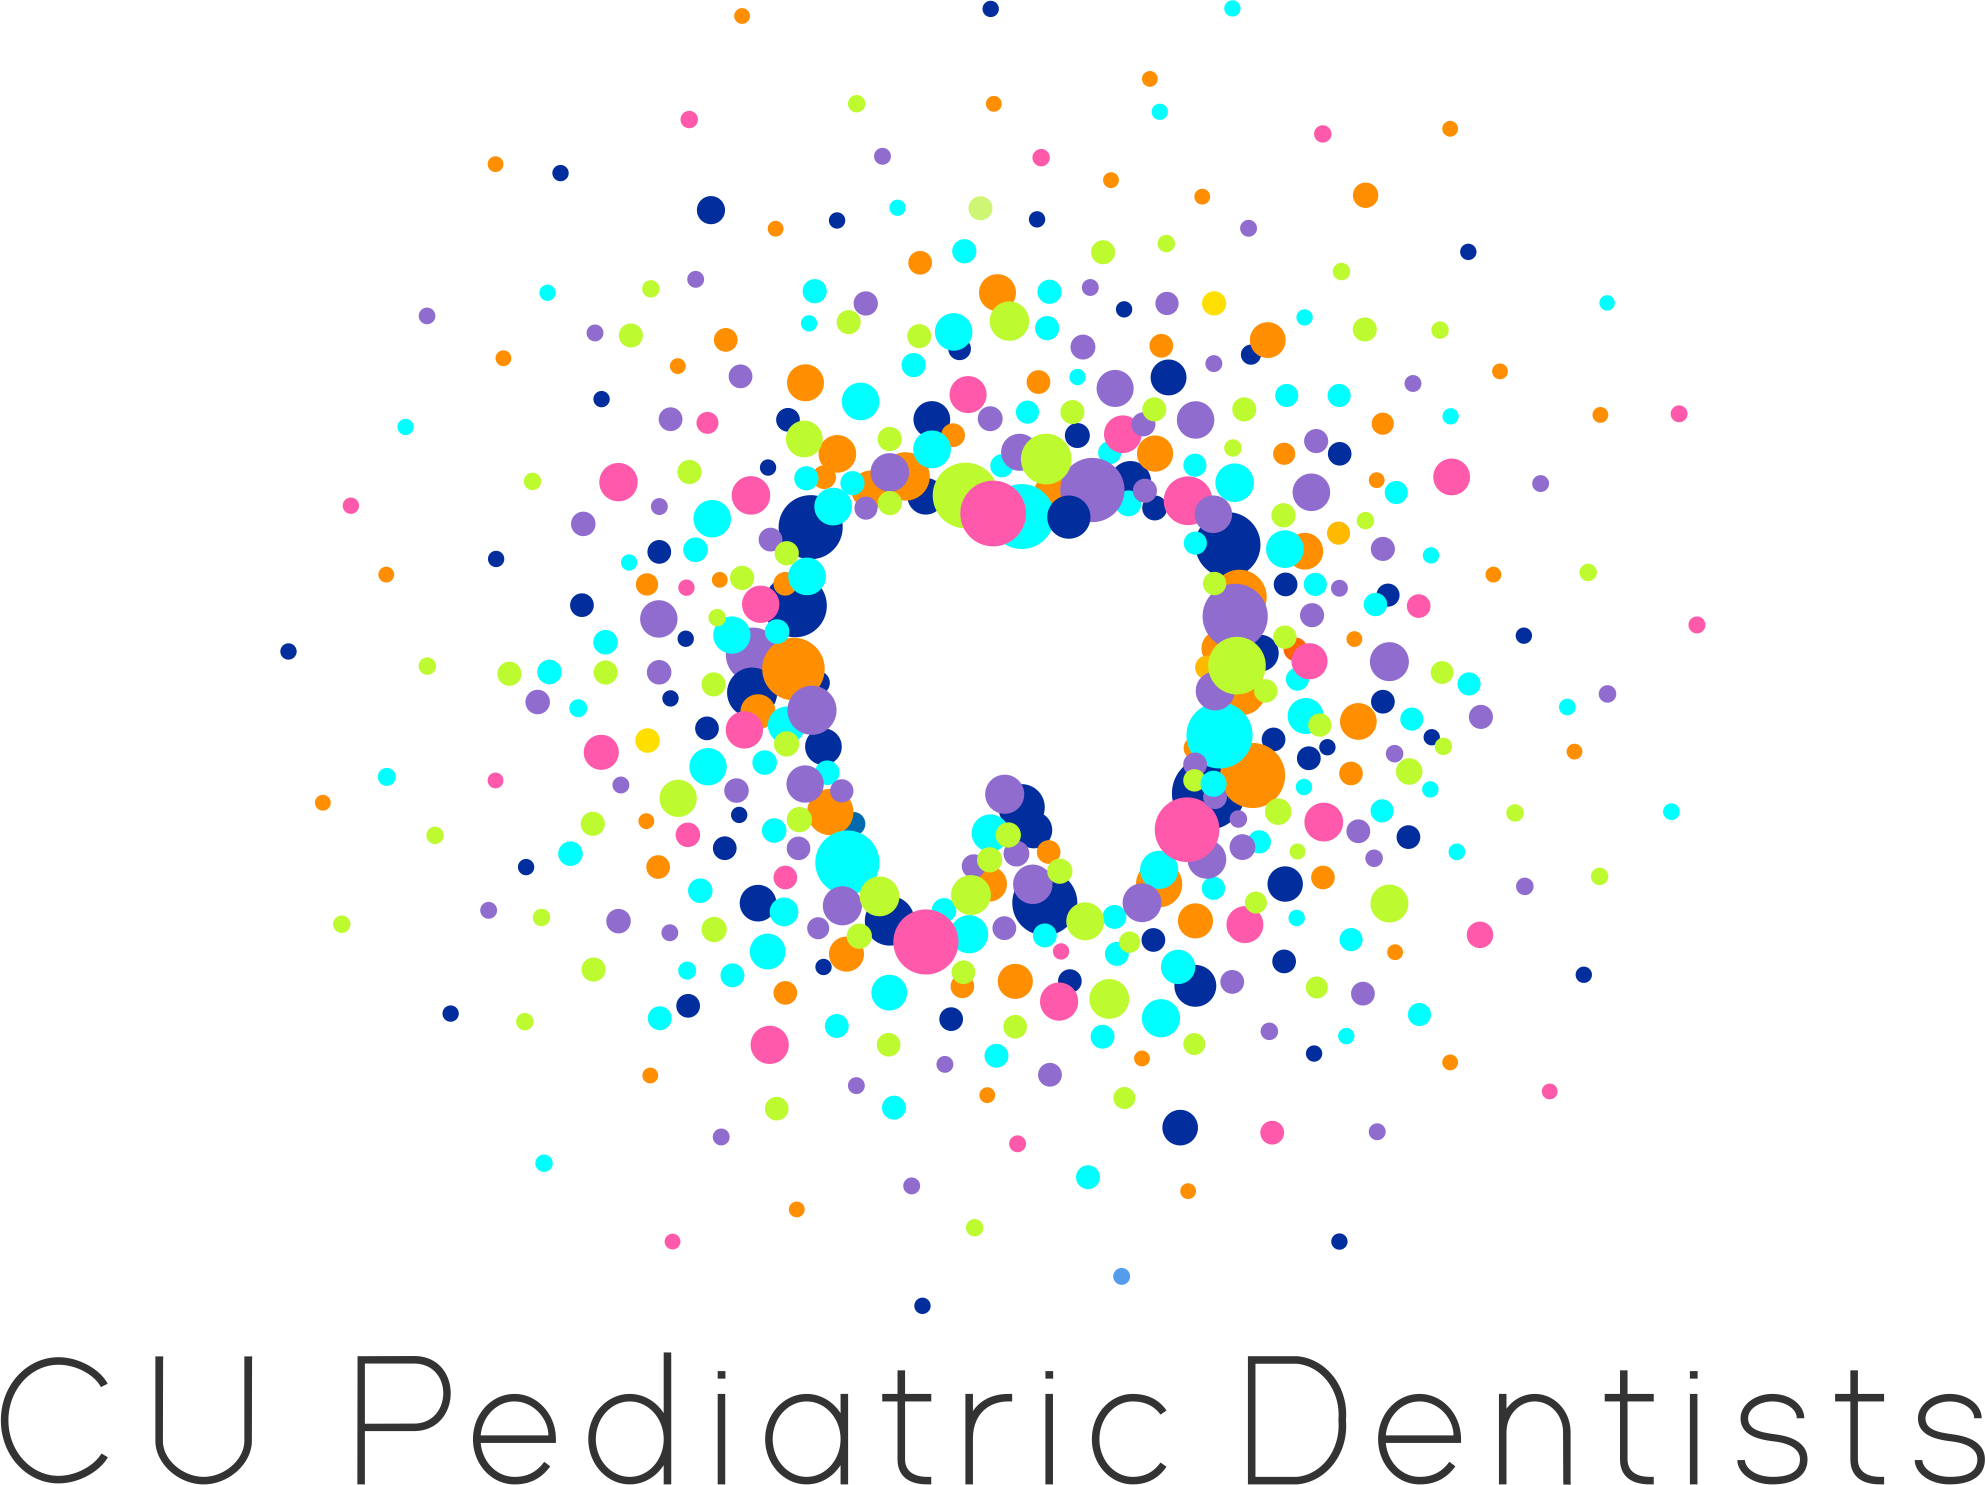 CU Pediatric Dentists